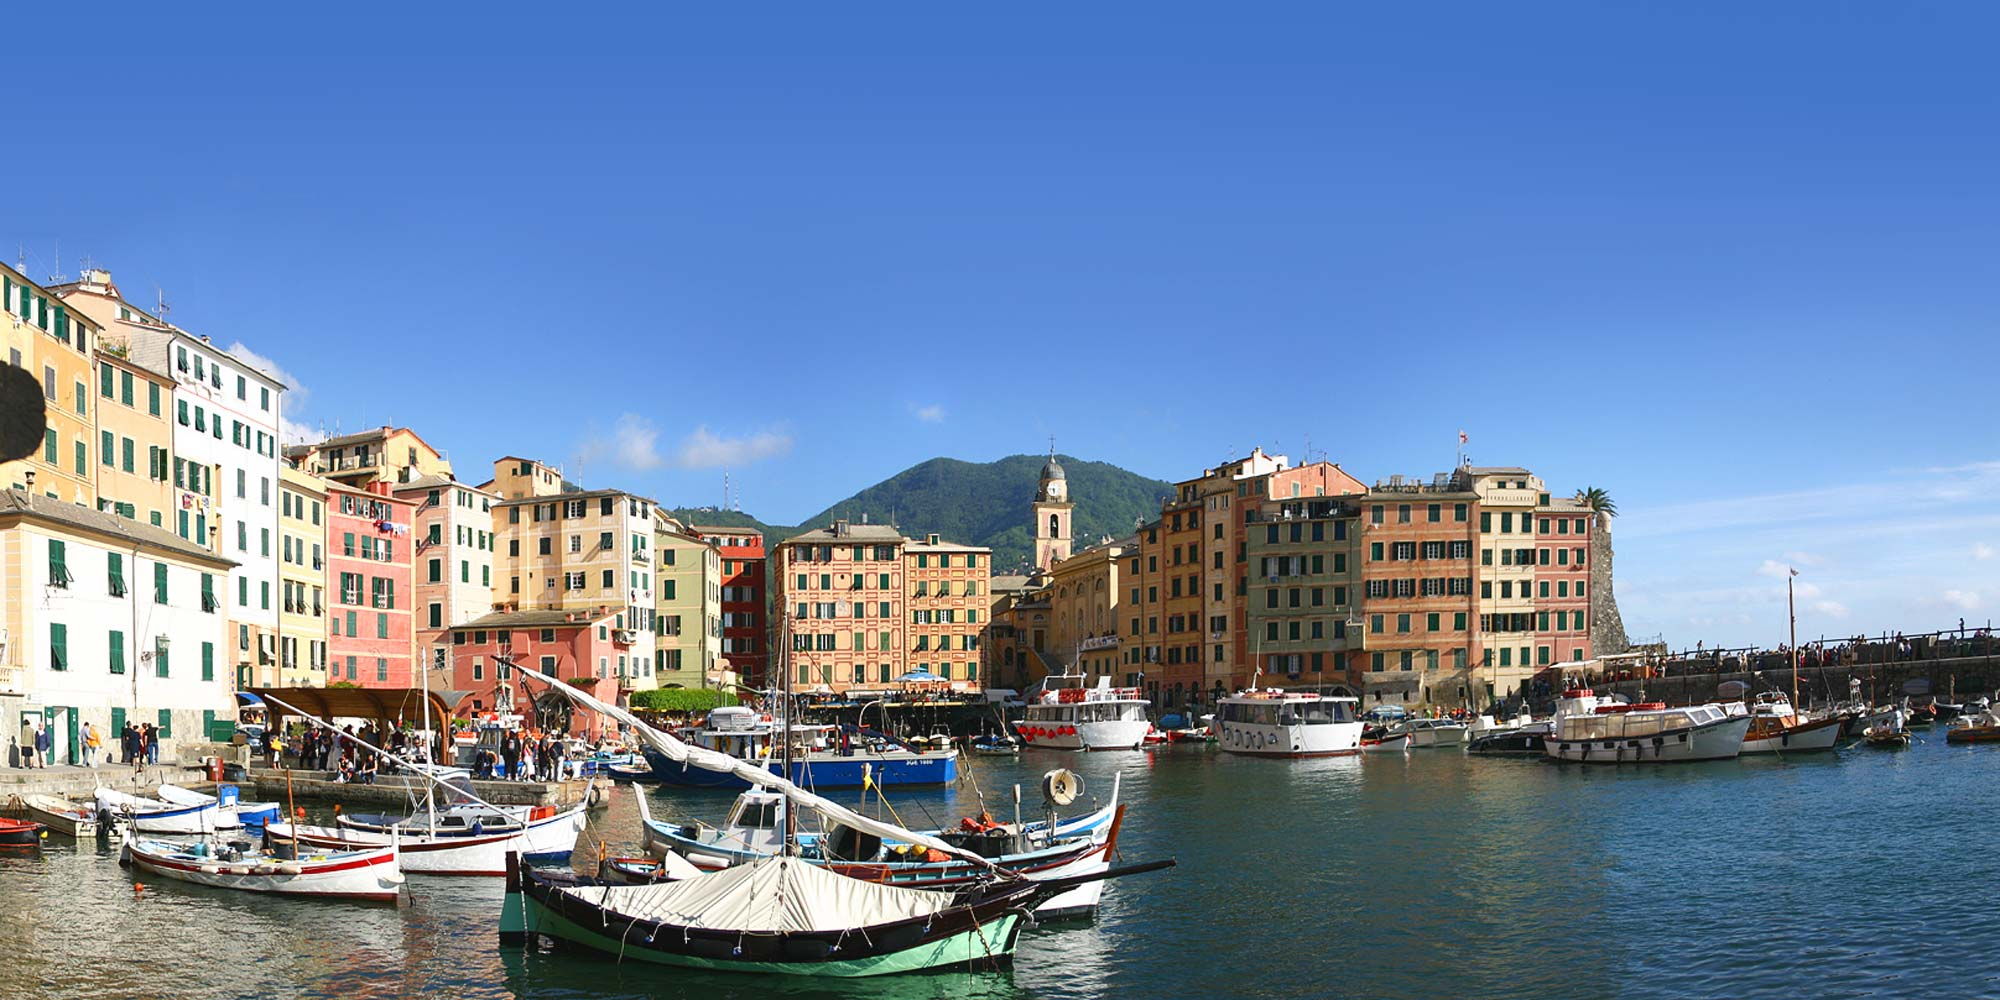 WHAT TO SEE IN THE BEAUTIFUL CAMOGLI